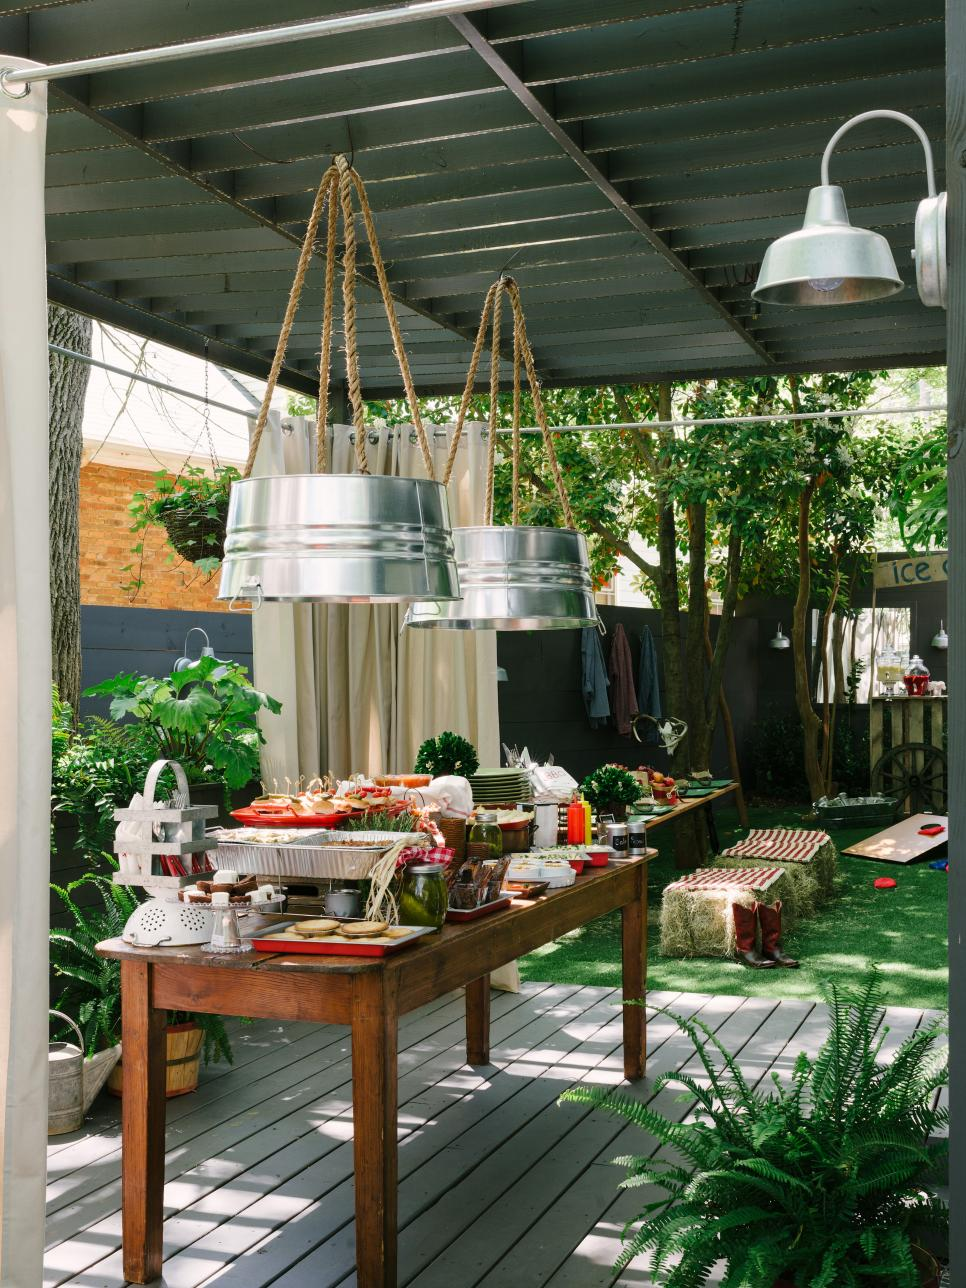 How To Host A Backyard Barbecue Wedding Shower DIY - Backyard bbq party ideas